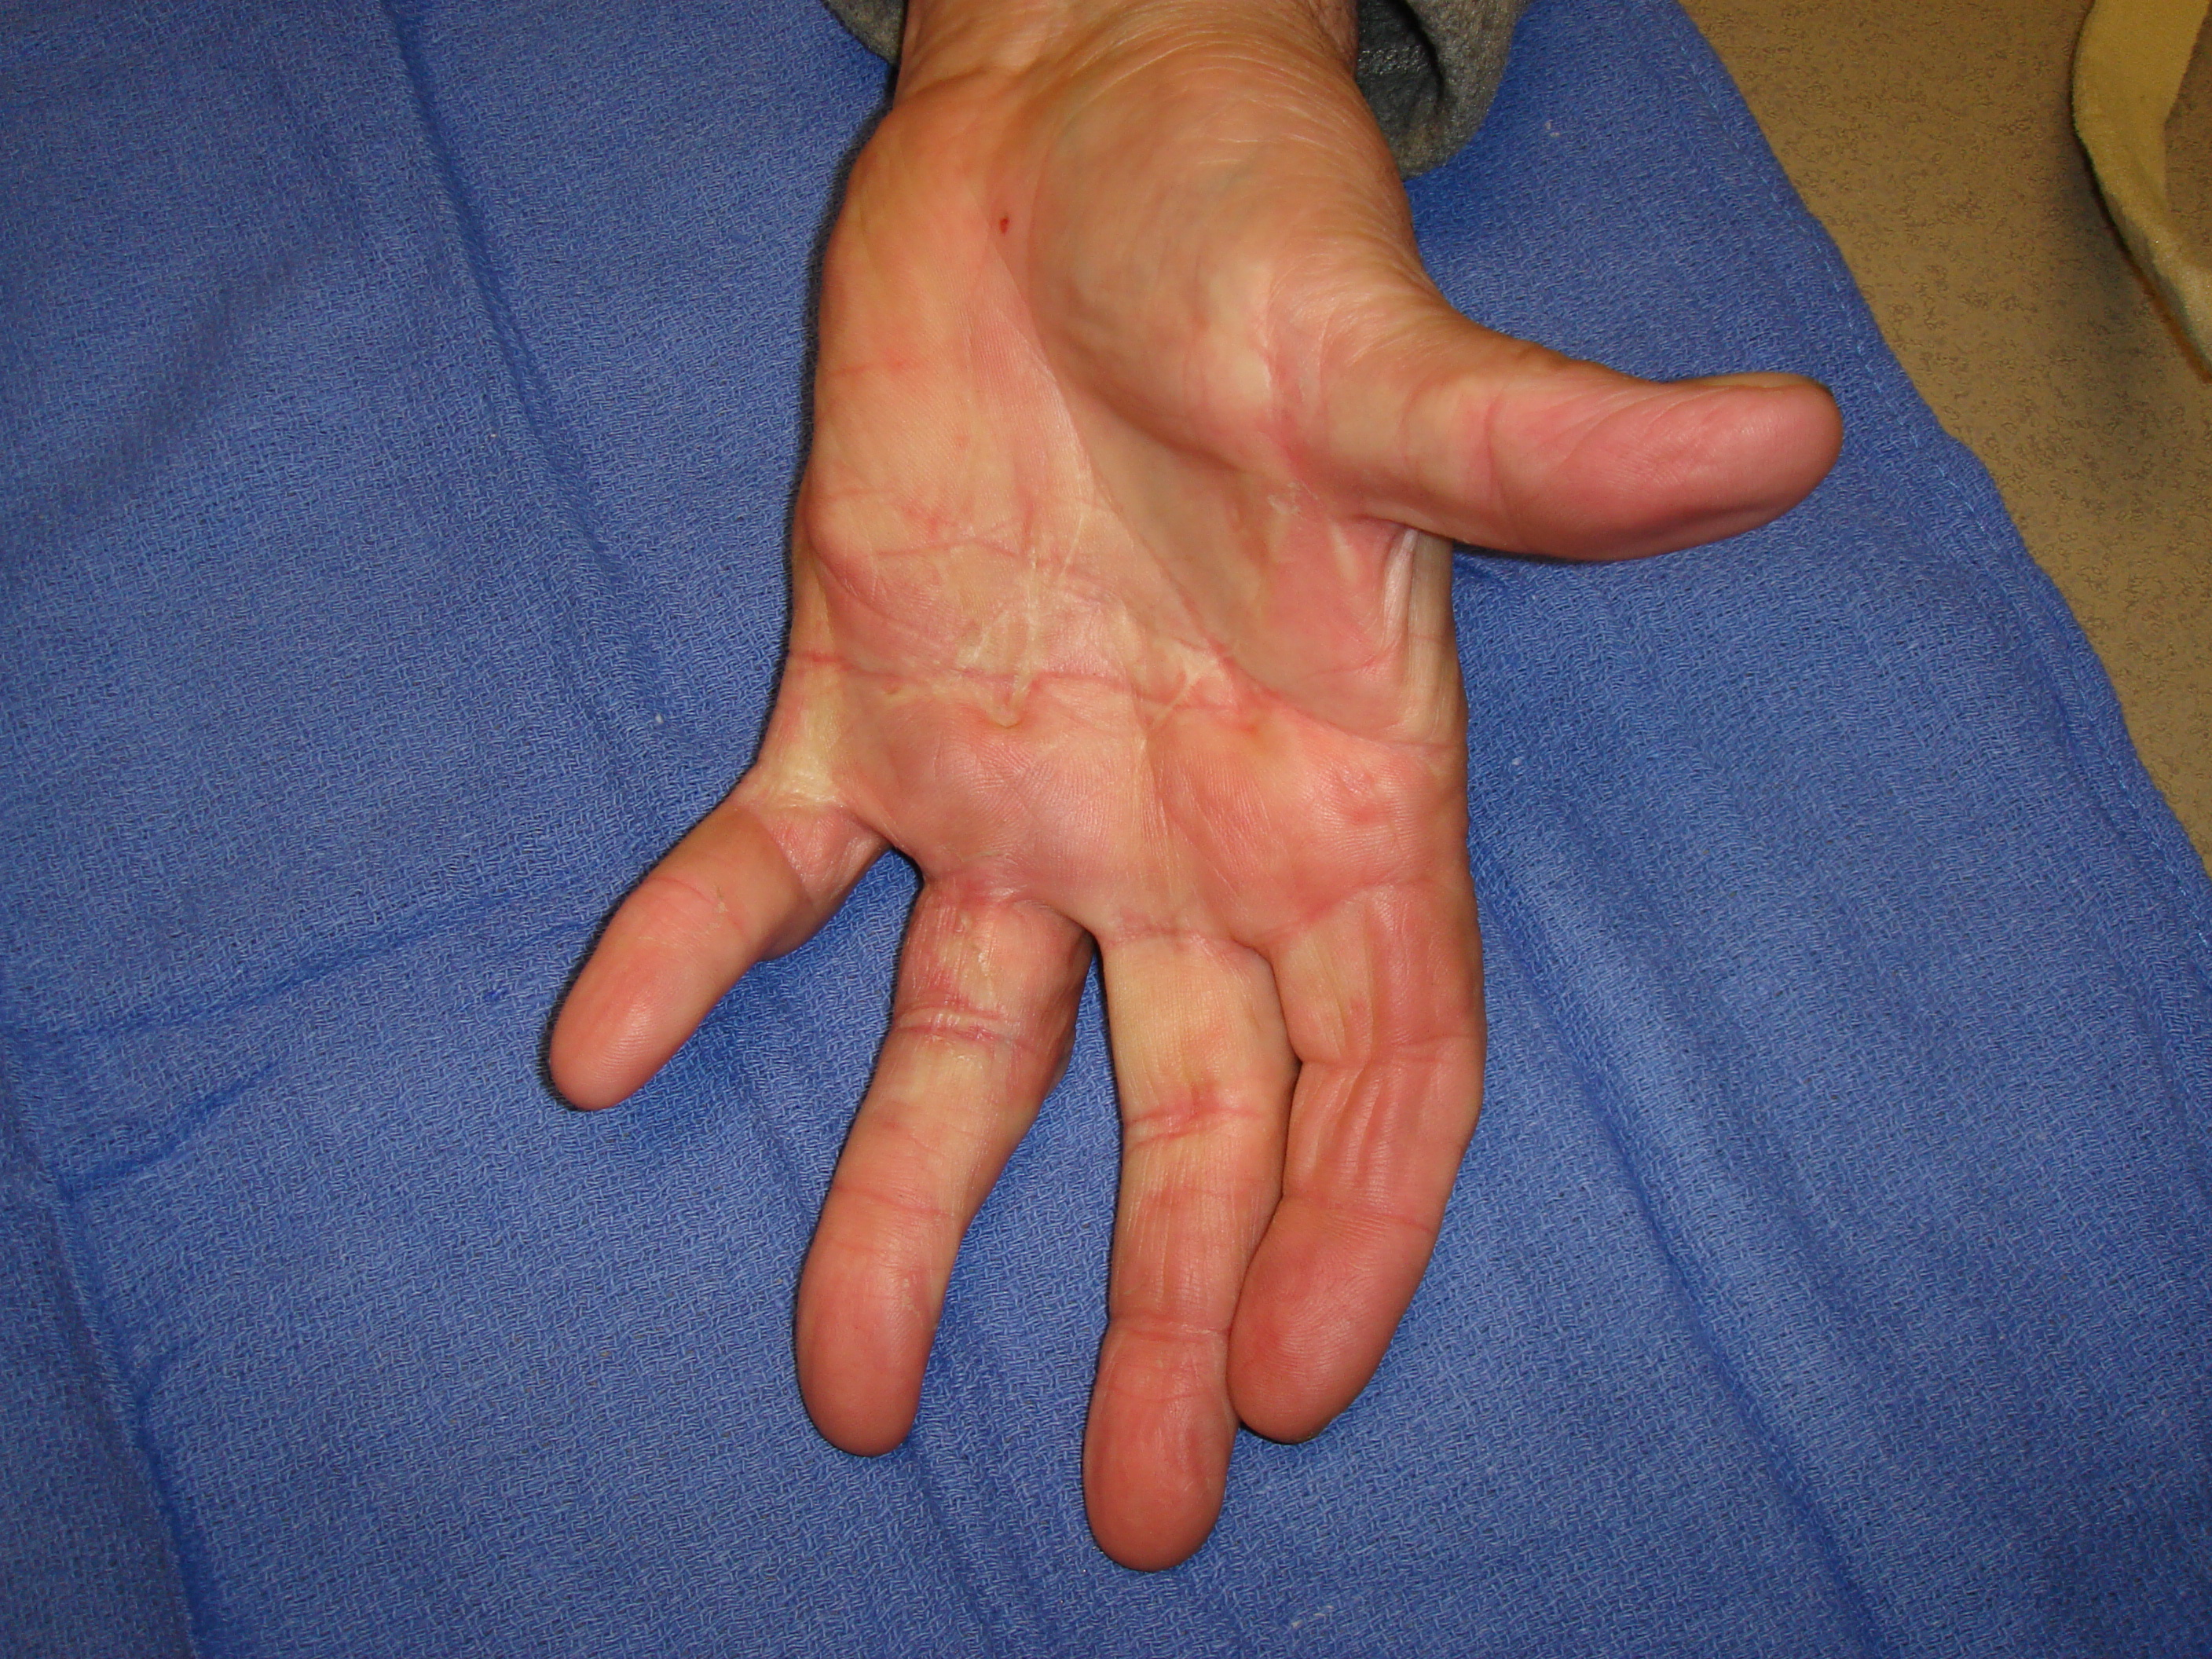 Figure 6i: These images were about 180 days after he completed his second collagenase treatment cycle that addressed the untreated/residual ring finger contractures. While some deformity persists, especially in the little finger PIP joint, he is quite functional and happy with his result.